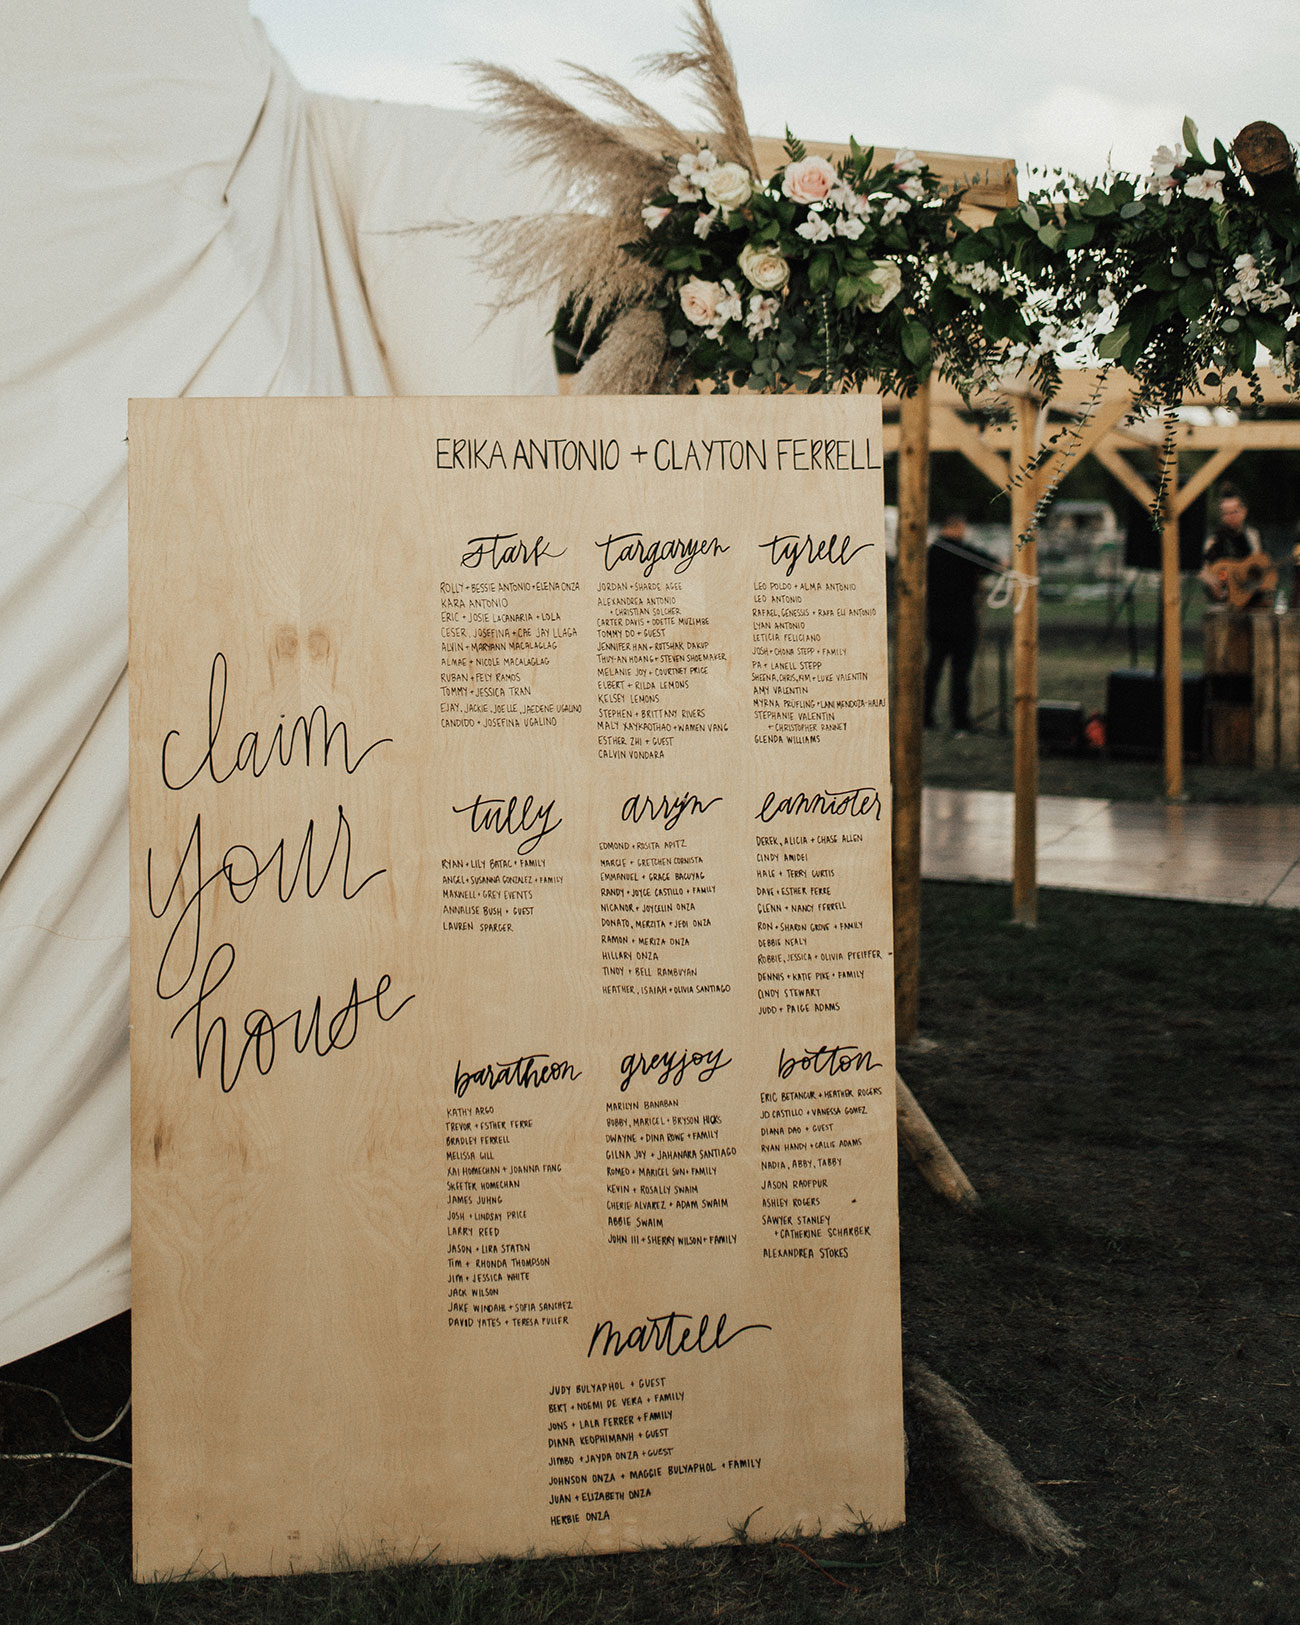 Game of Thrones wedding seating chart